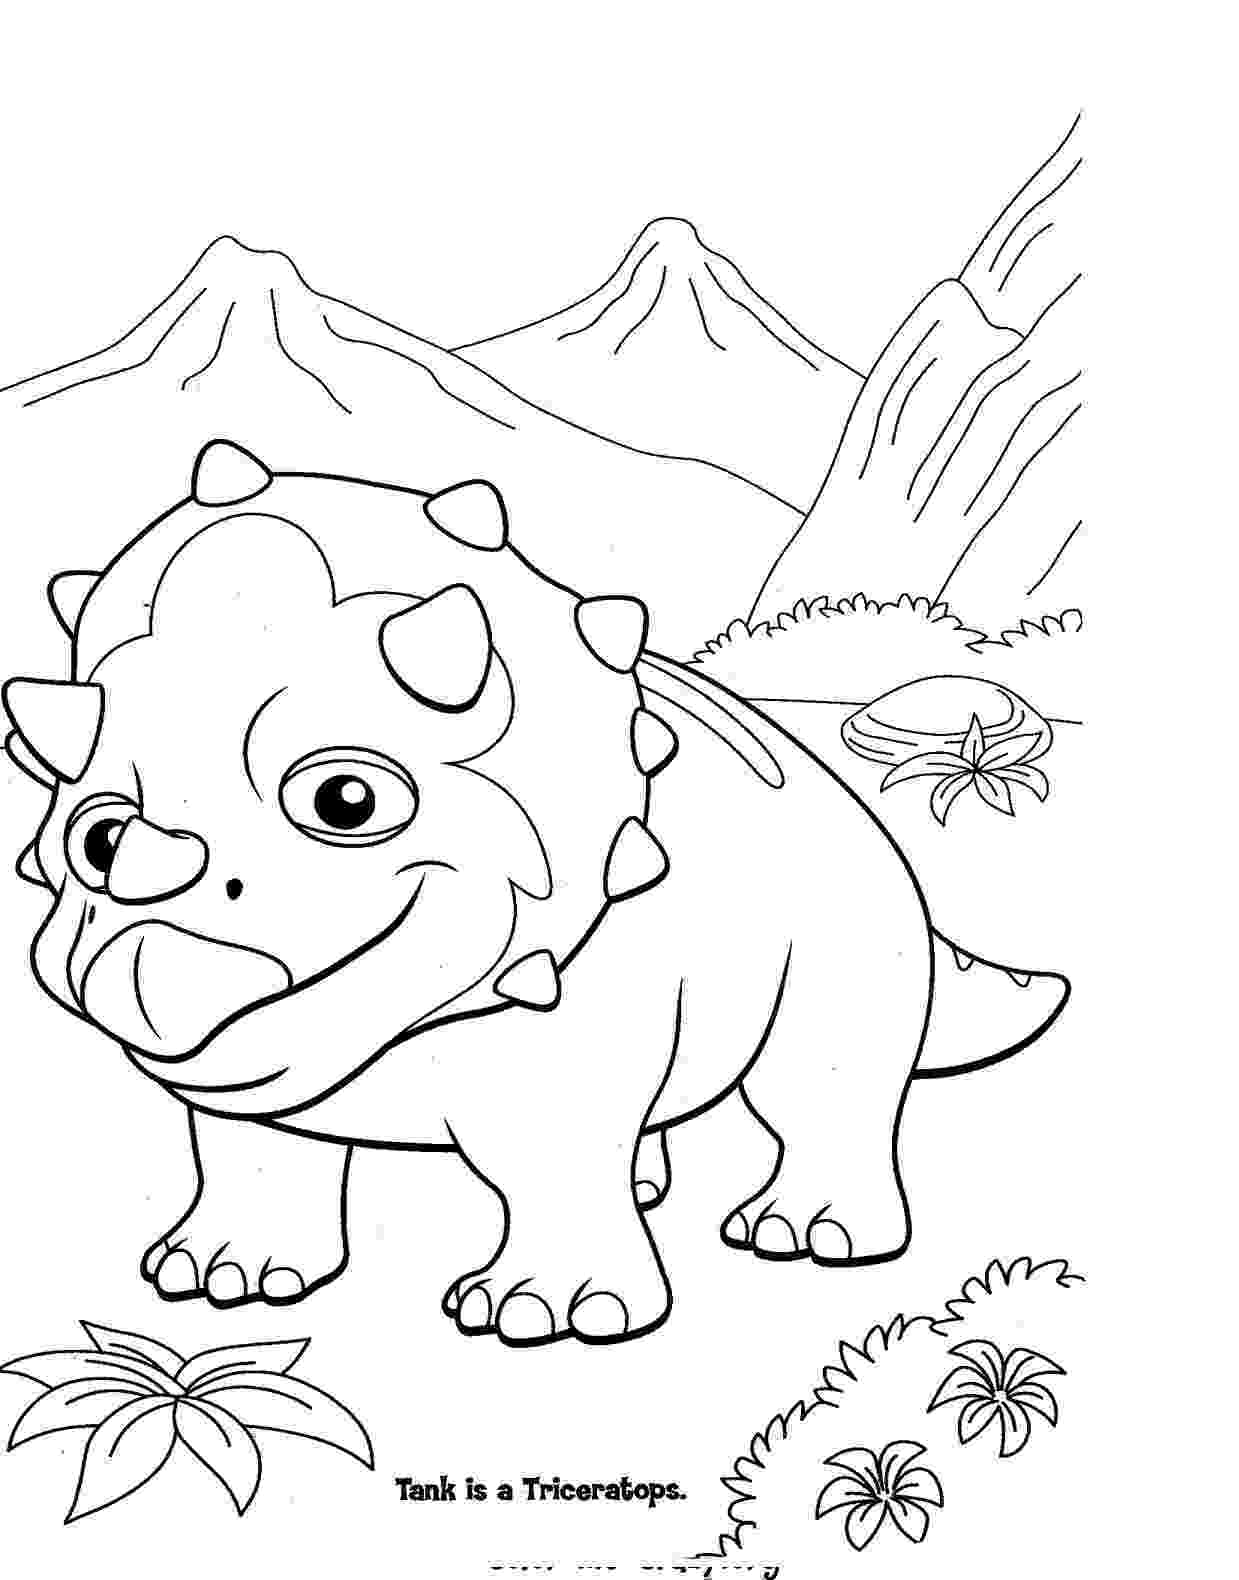 dinosaurs for coloring colormecrazyorg dinosaur train coloring pages for coloring dinosaurs